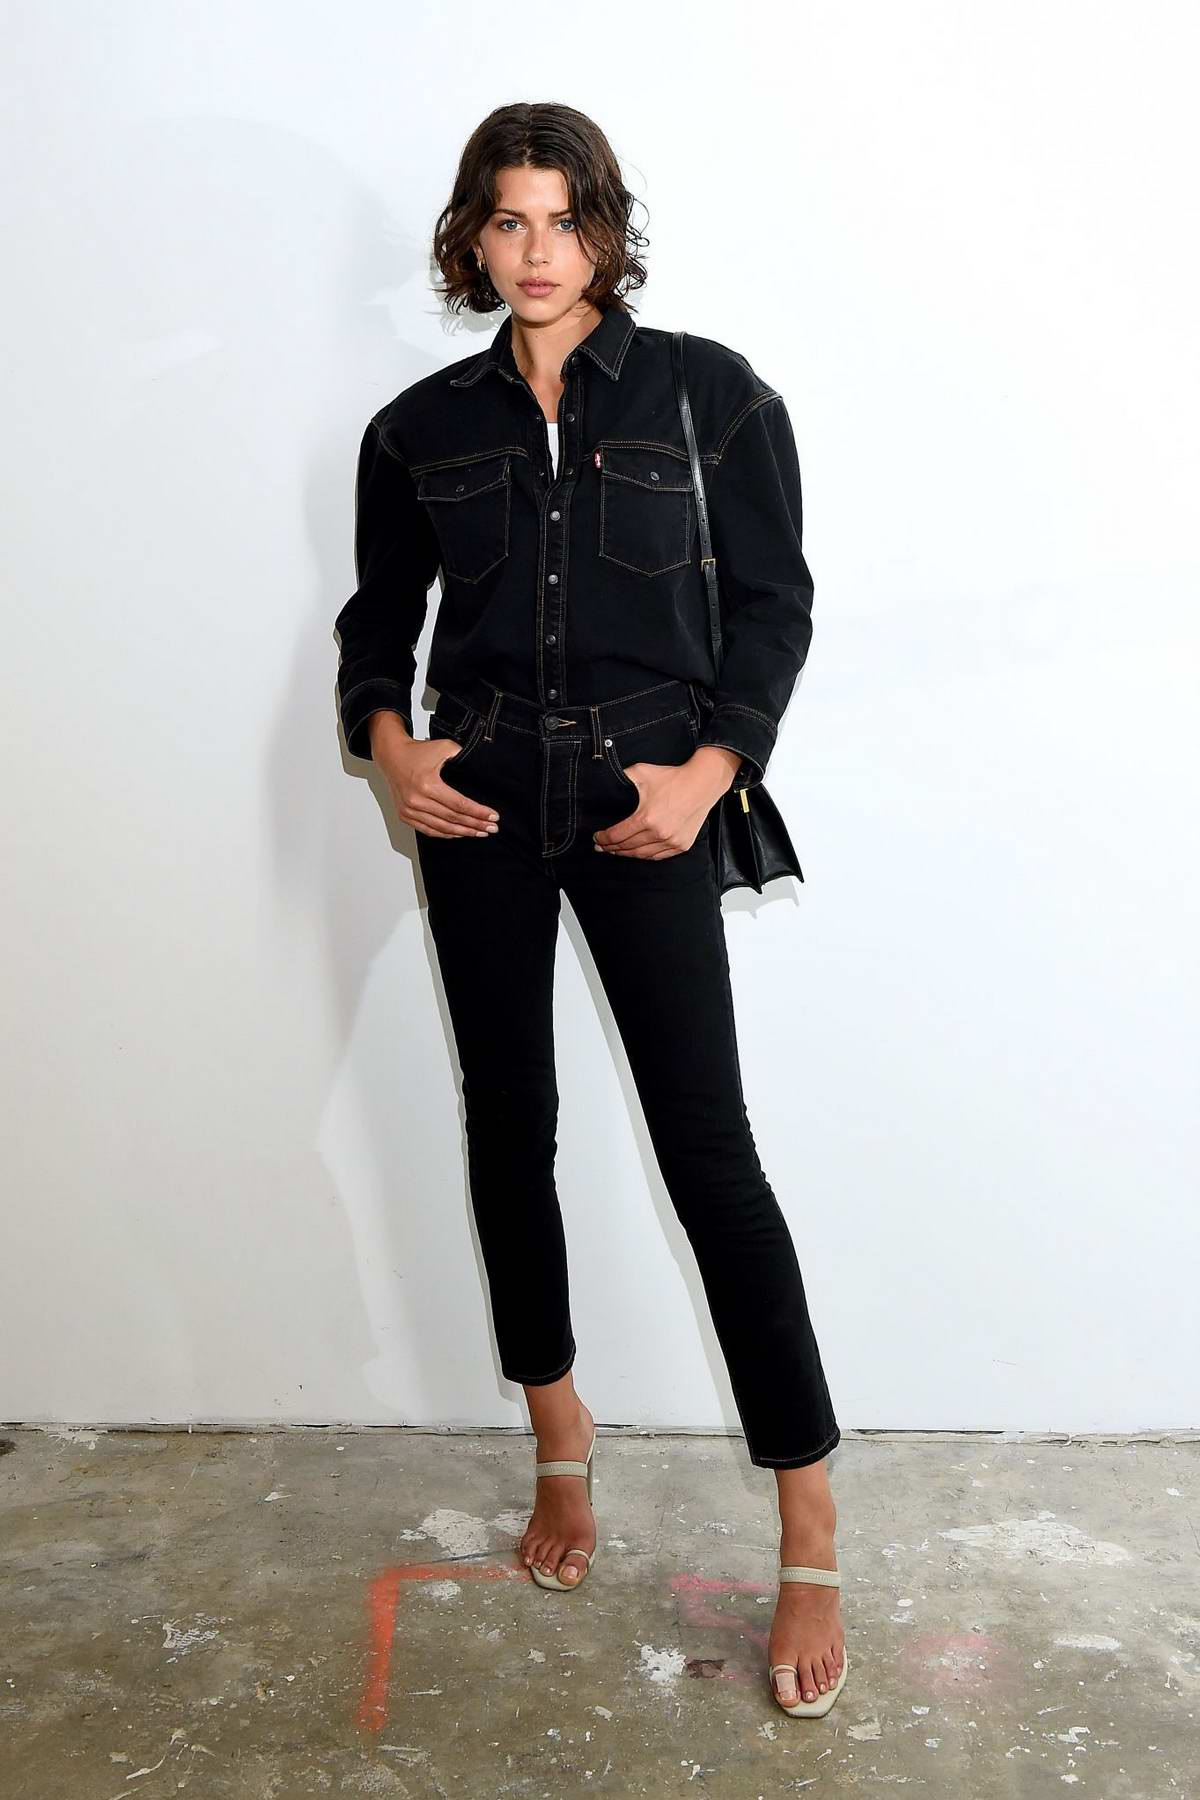 Georgia Fowler attends Wardrobe.NYC launch of Release 04 DENIM & Levi's Collaboration in New York City